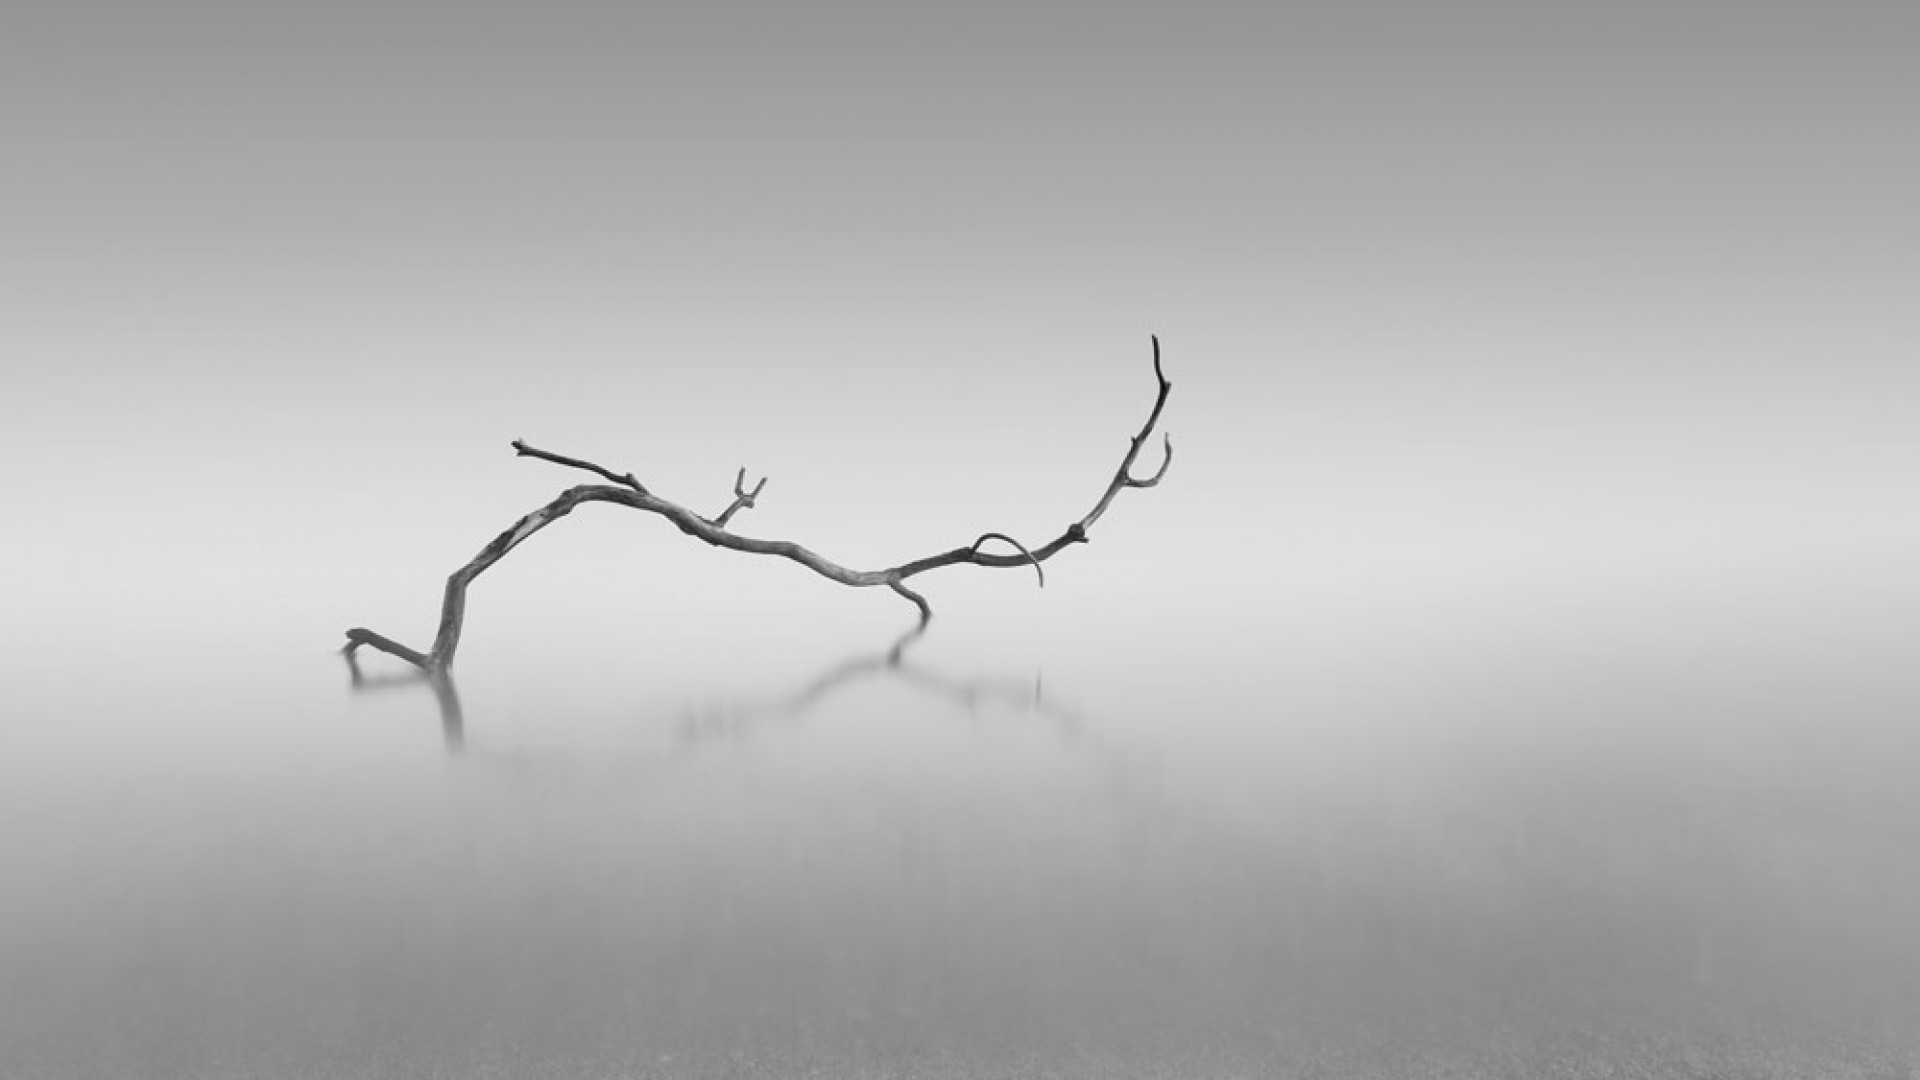 Surreal twisted branch lying on the sand of a beach near Plymouth, England